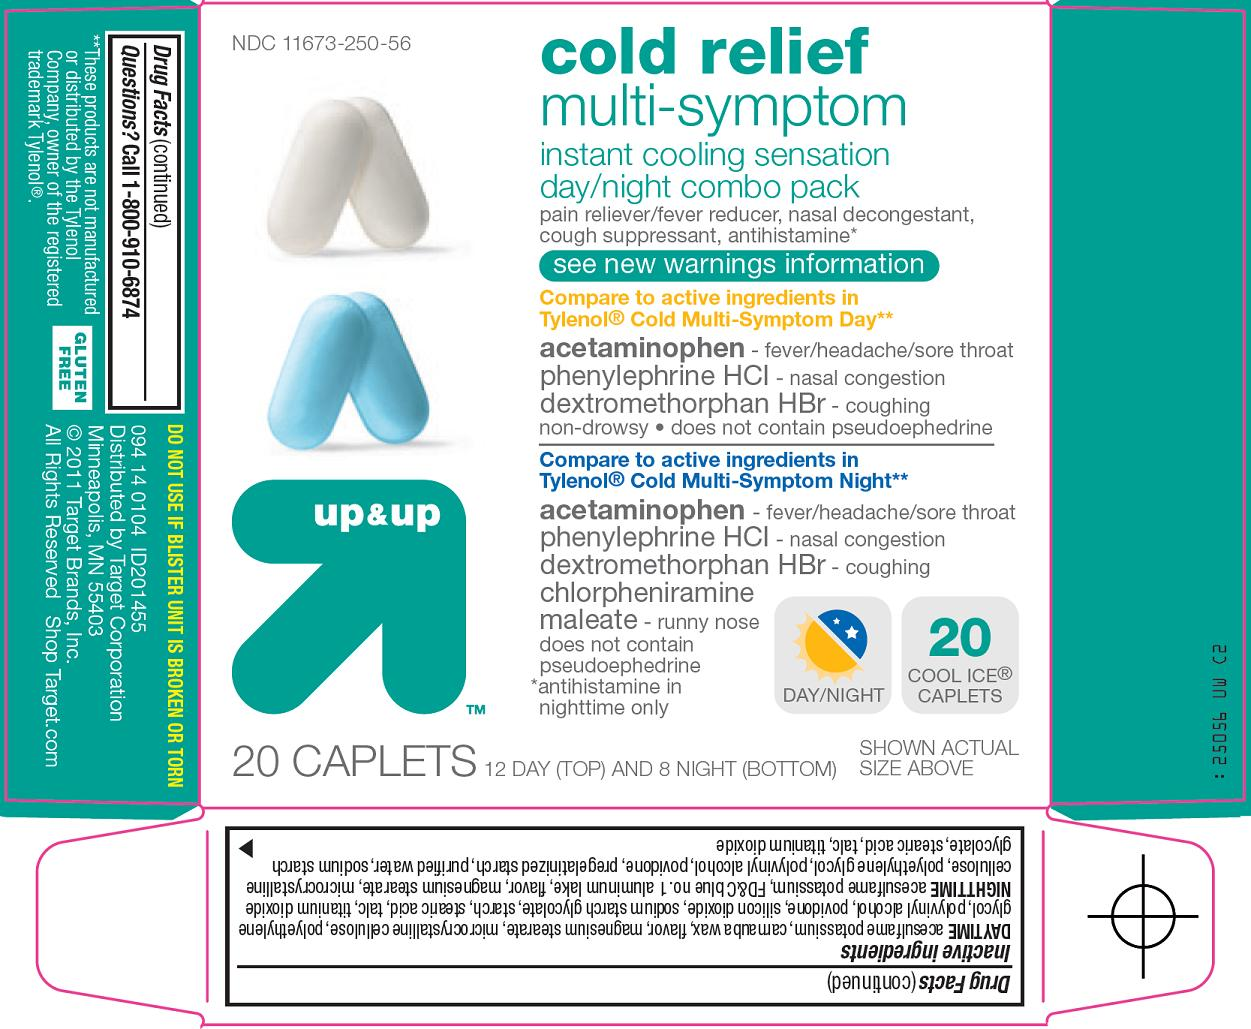 Up And Up Cold Relief Breastfeeding